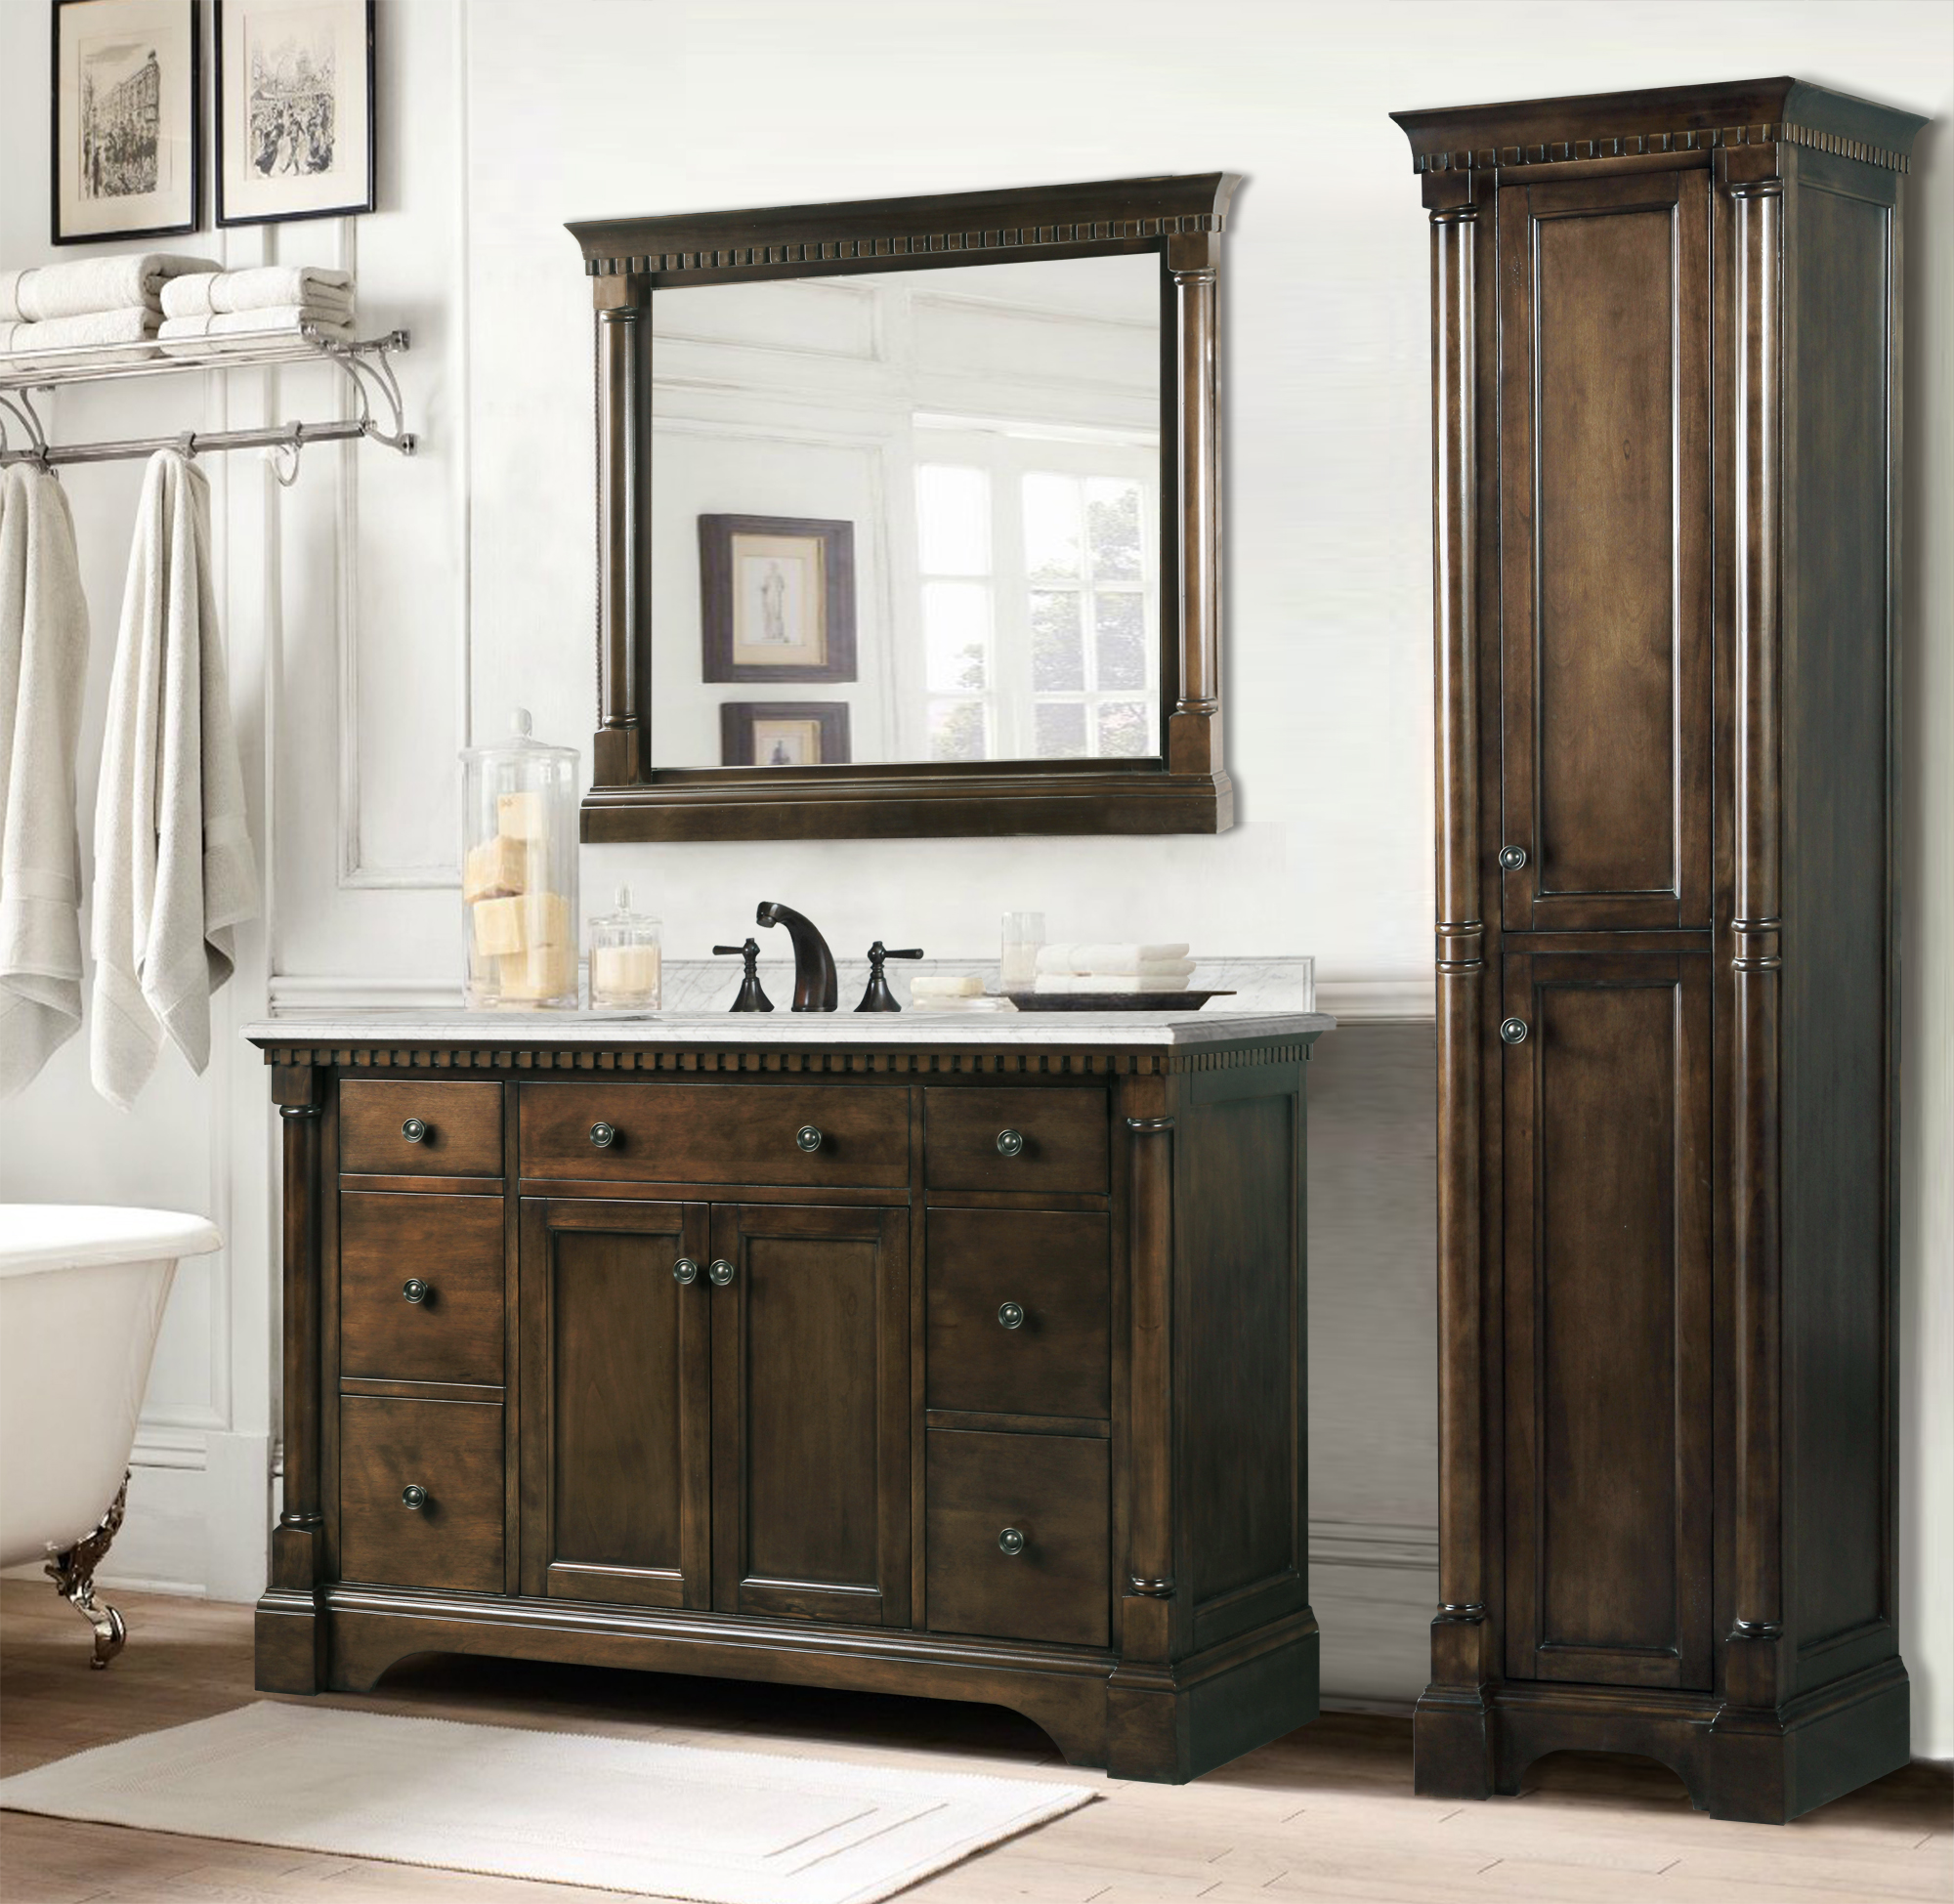 legion furniture 48 bathroom vanity urban home designing trends u2022 rh suzanstirling com